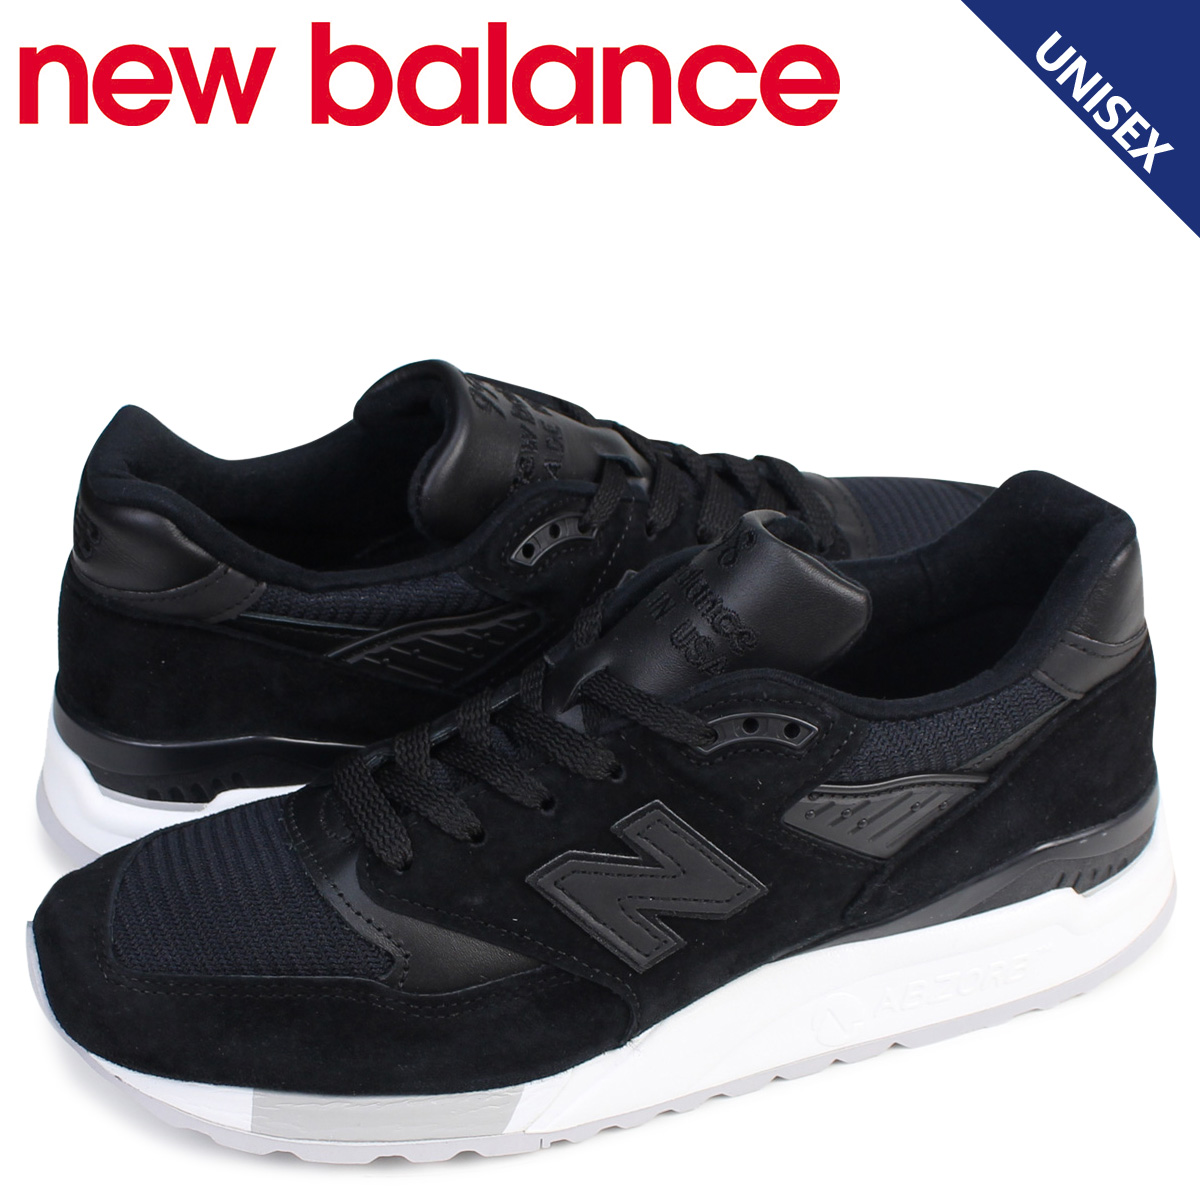 official photos a4102 fd166 New Balance 998 men's lady's new balance sneakers M998NJ D Wise MADE IN USA  shoes black black